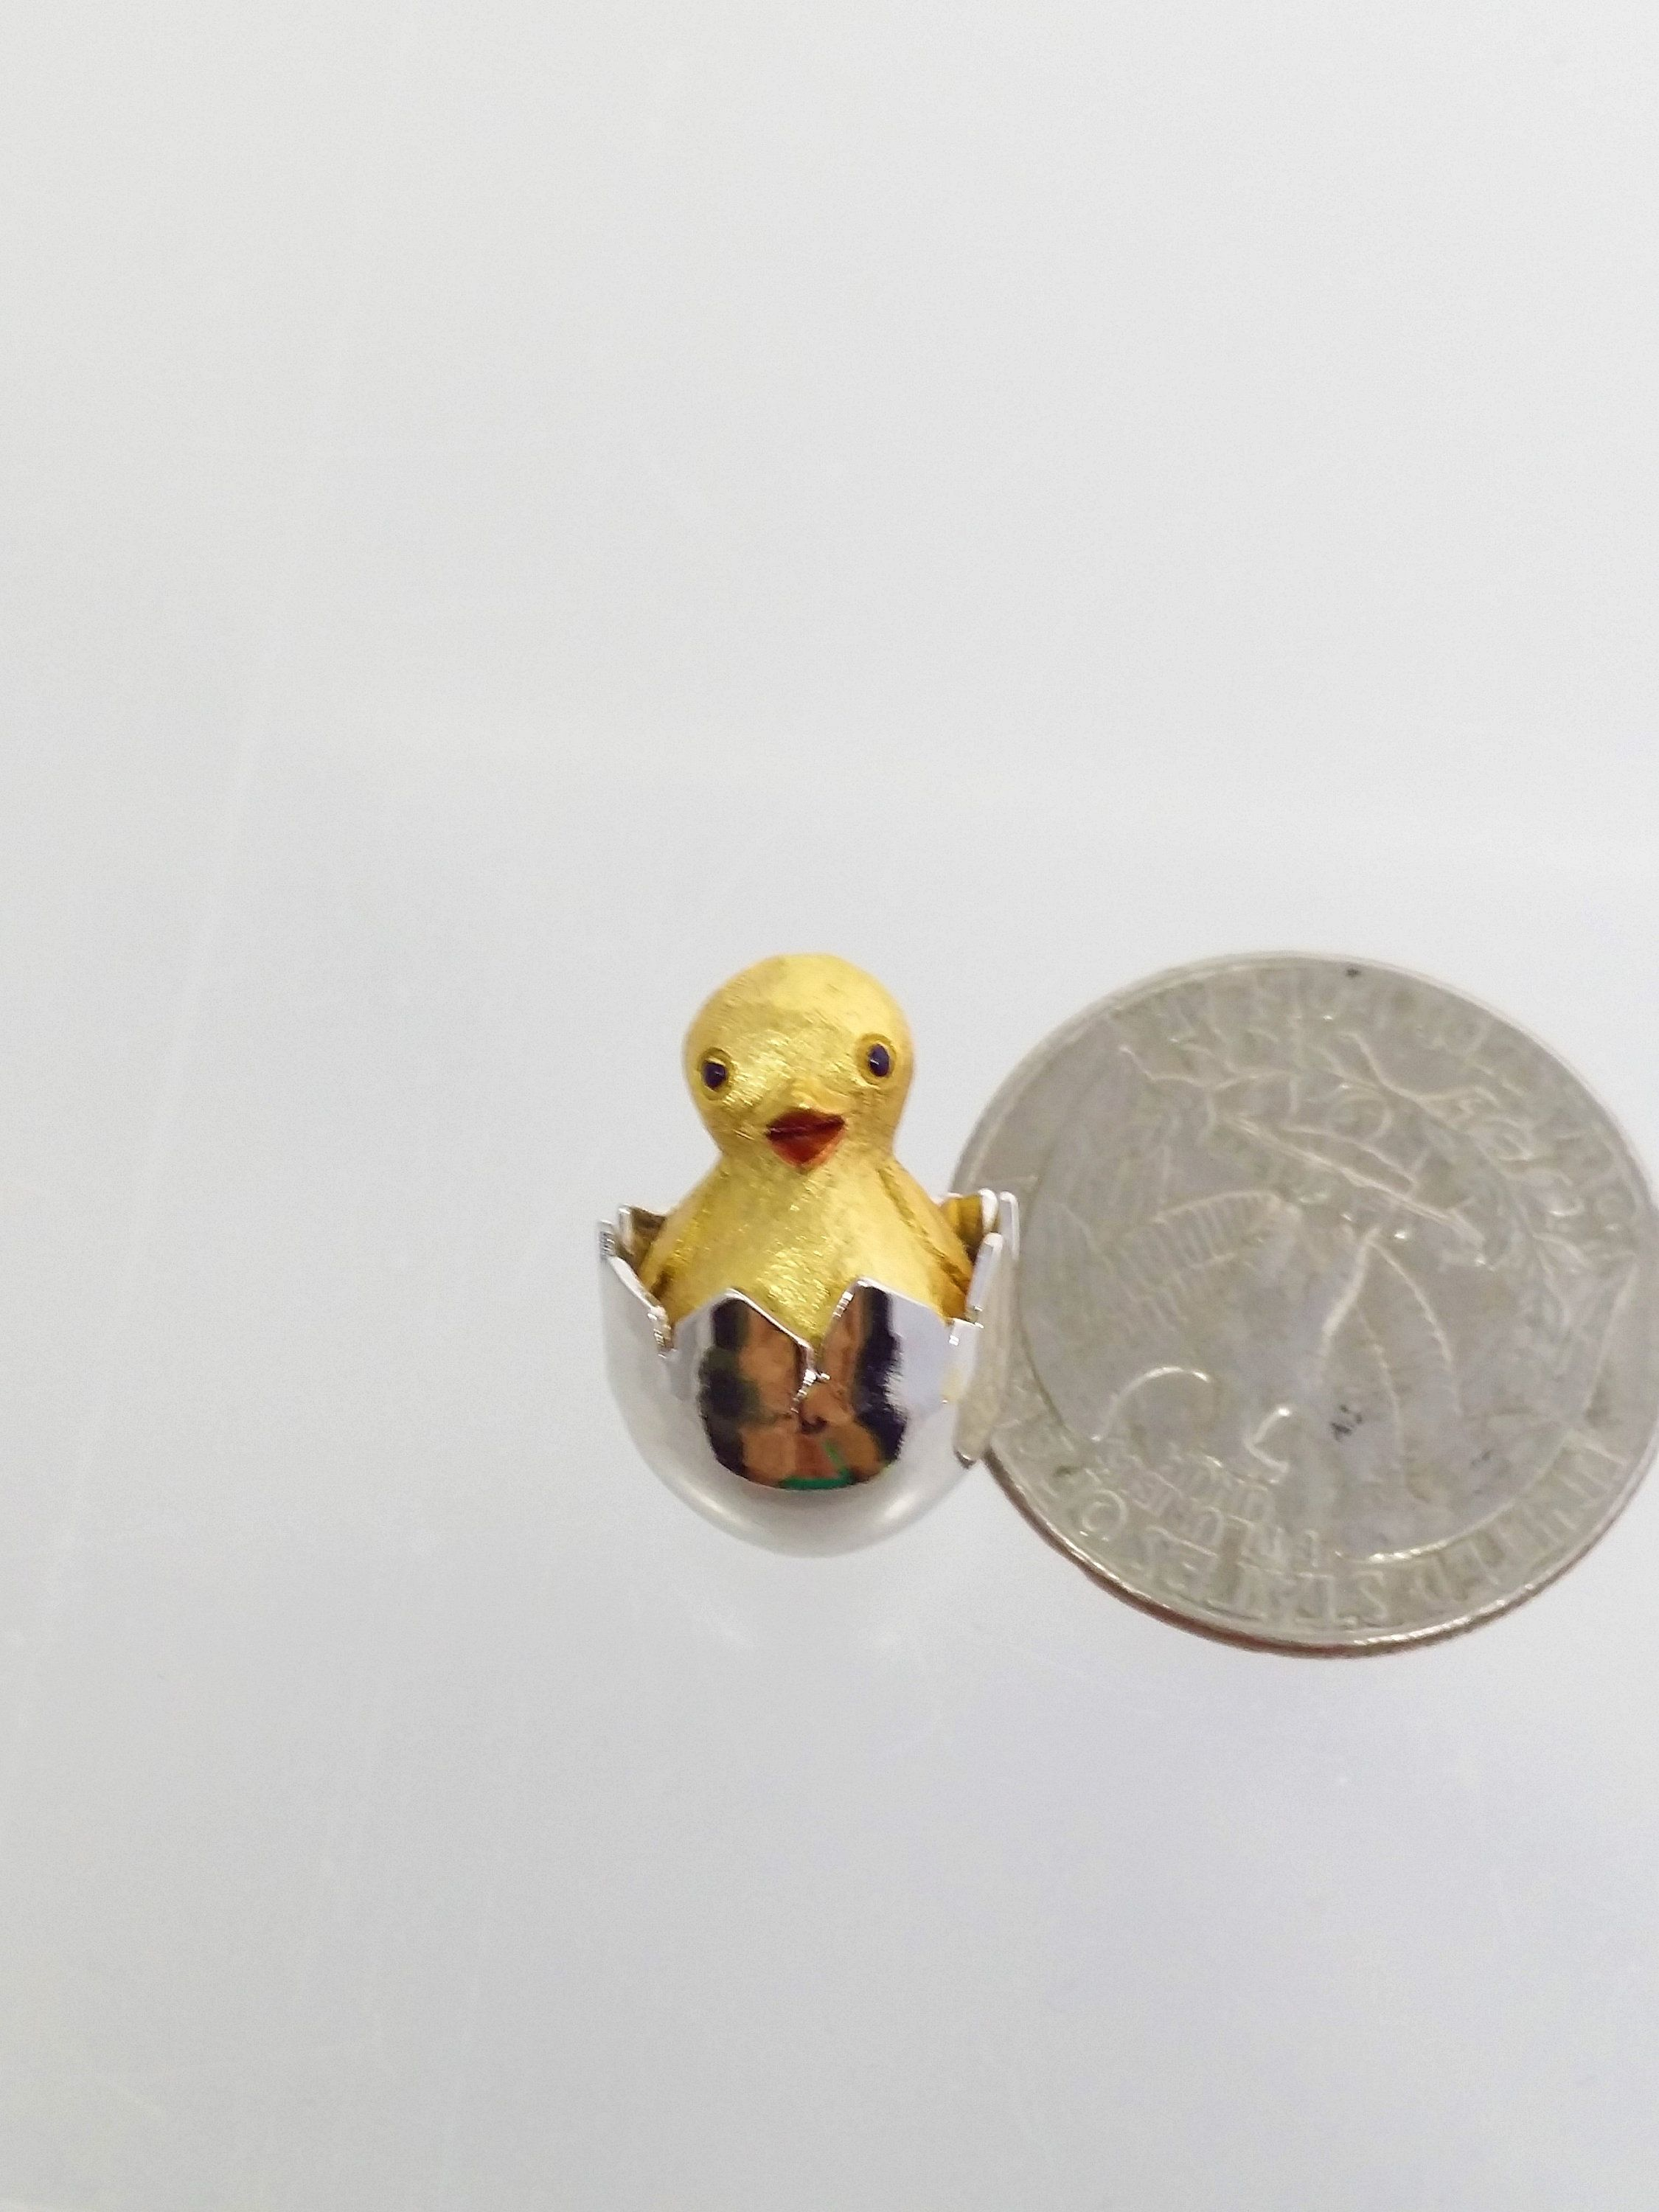 527c8d426fac Avon Chicken in Cracked Egg Lapel Pin, Hatching Chick Tie Tack, Vintage  Women's Costume Jewelry by Snowyowltreasures on Etsy